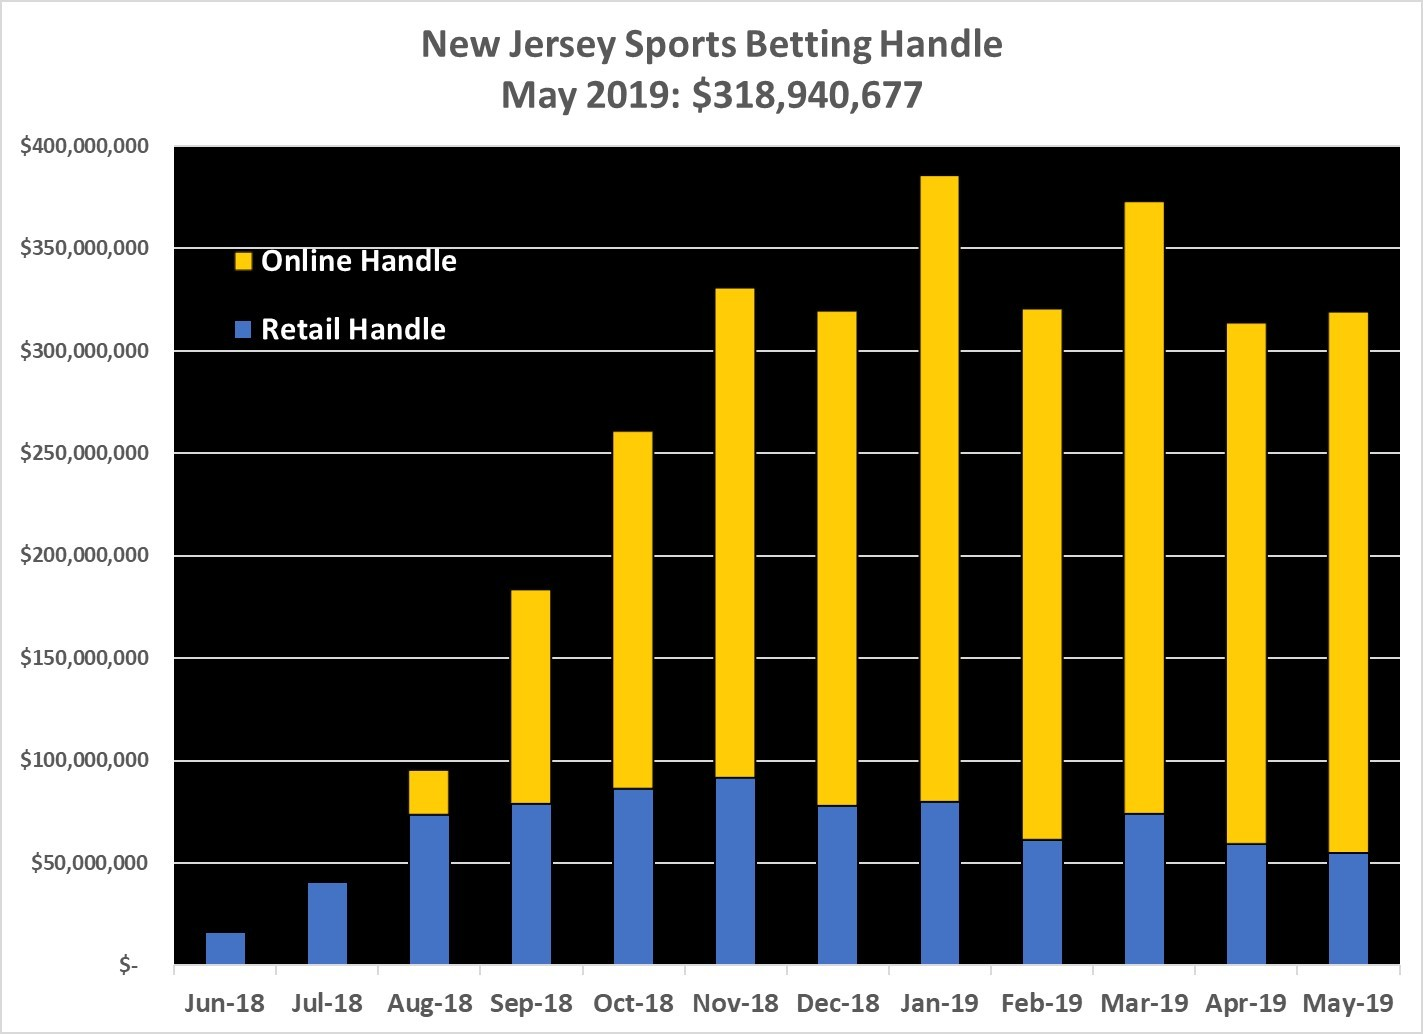 New Jersey Sports Betting Handle